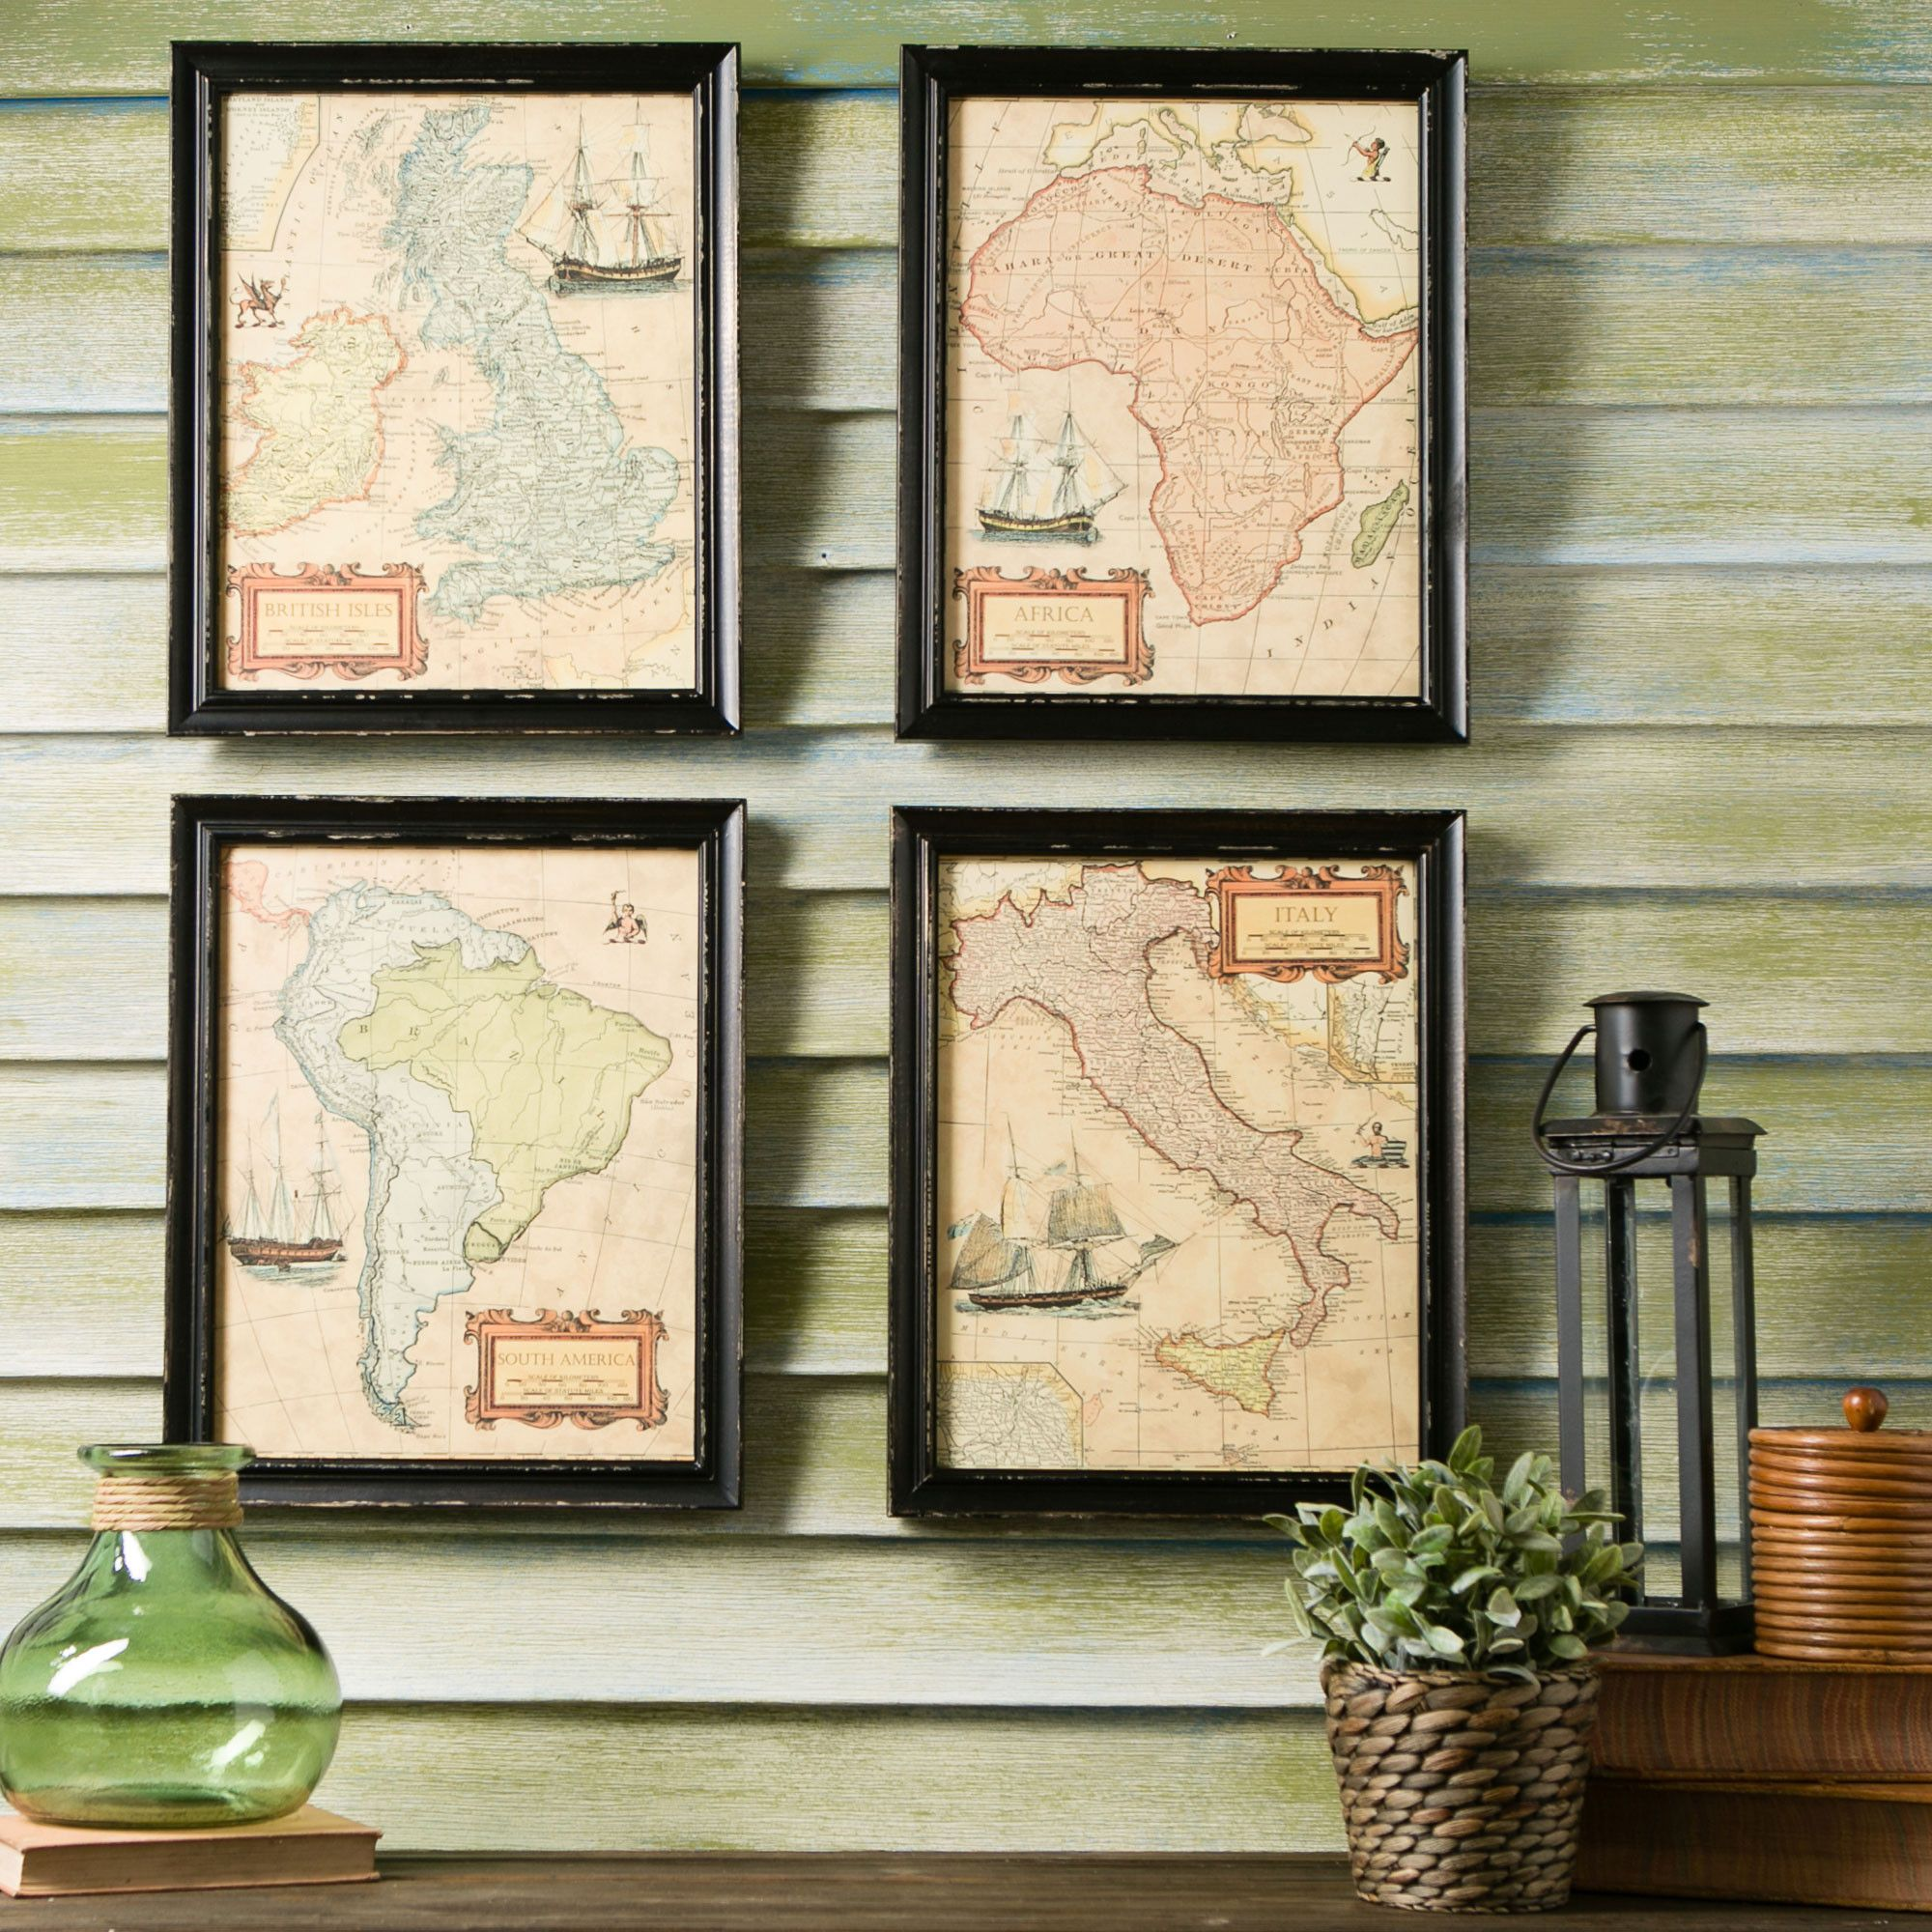 Birch Lane Belgrave Framed Prints - Coordinating historical maps of Africa, Italy, British Isles, and South America framed in dark wood look stunning displayed individually throughout your home or office or grouped together.